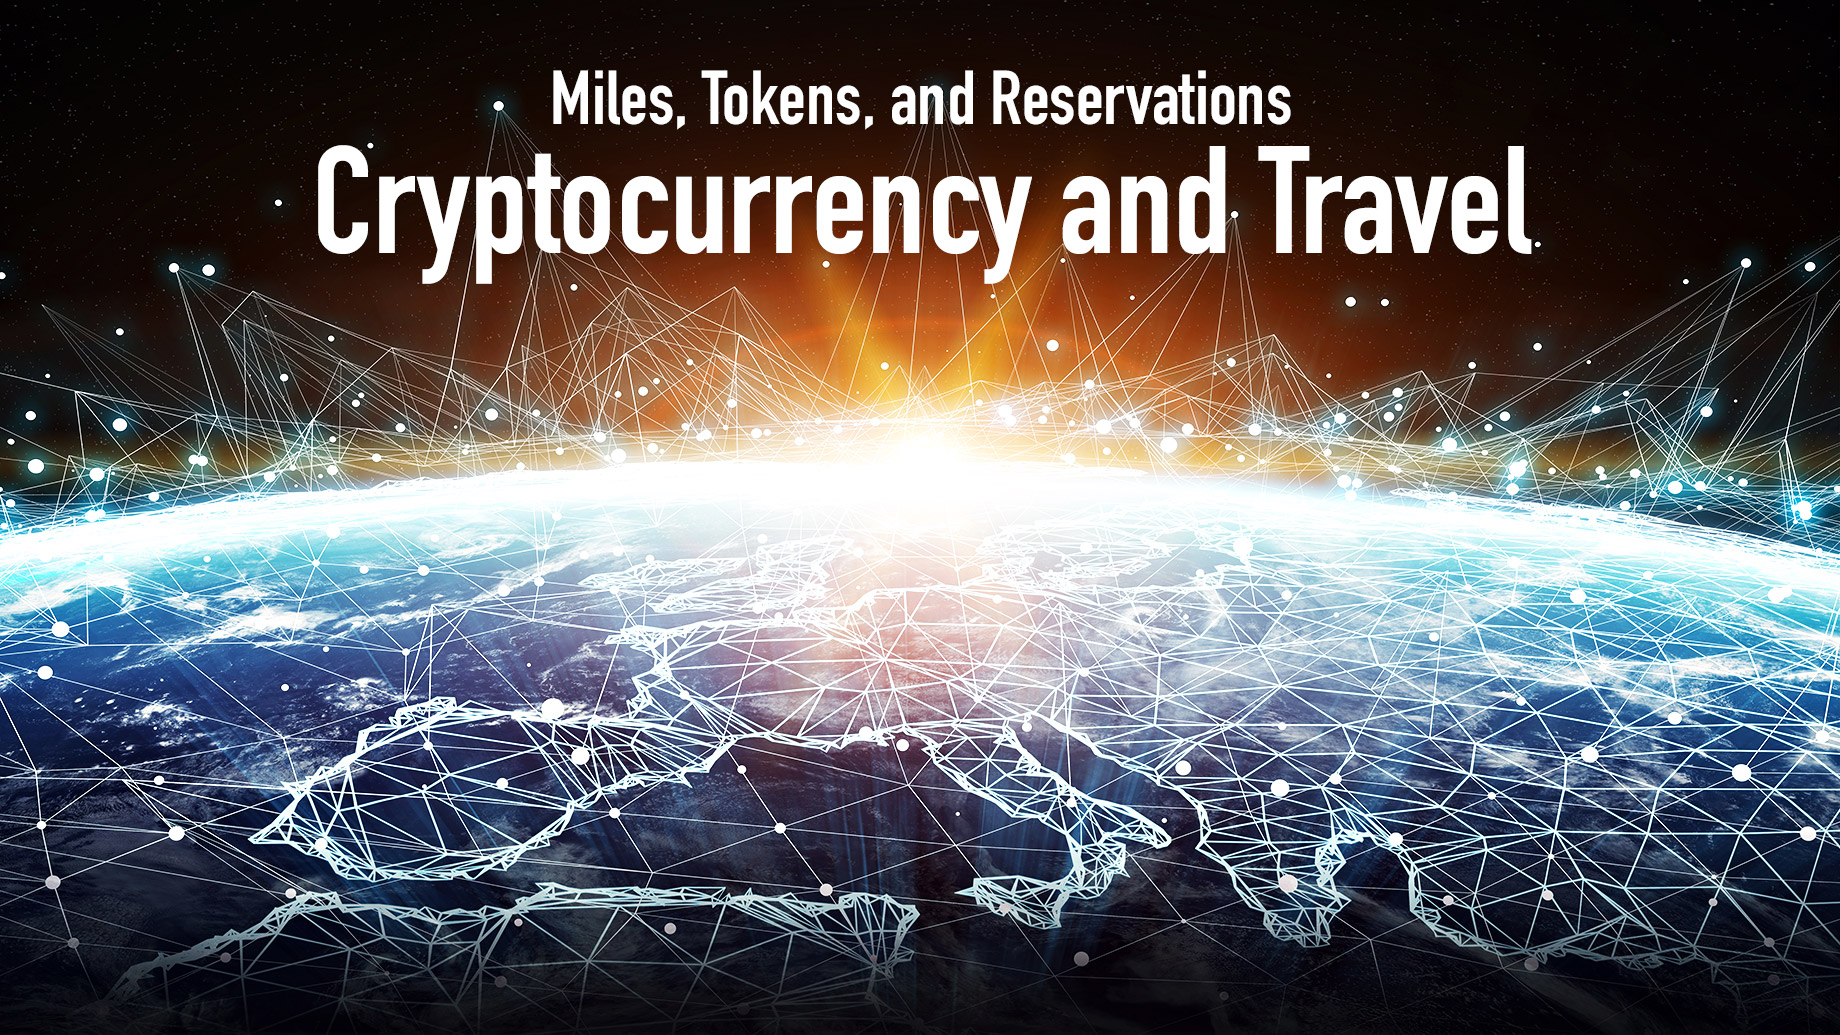 Miles, Tokens, and Reservations - Cryptocurrency and Travel